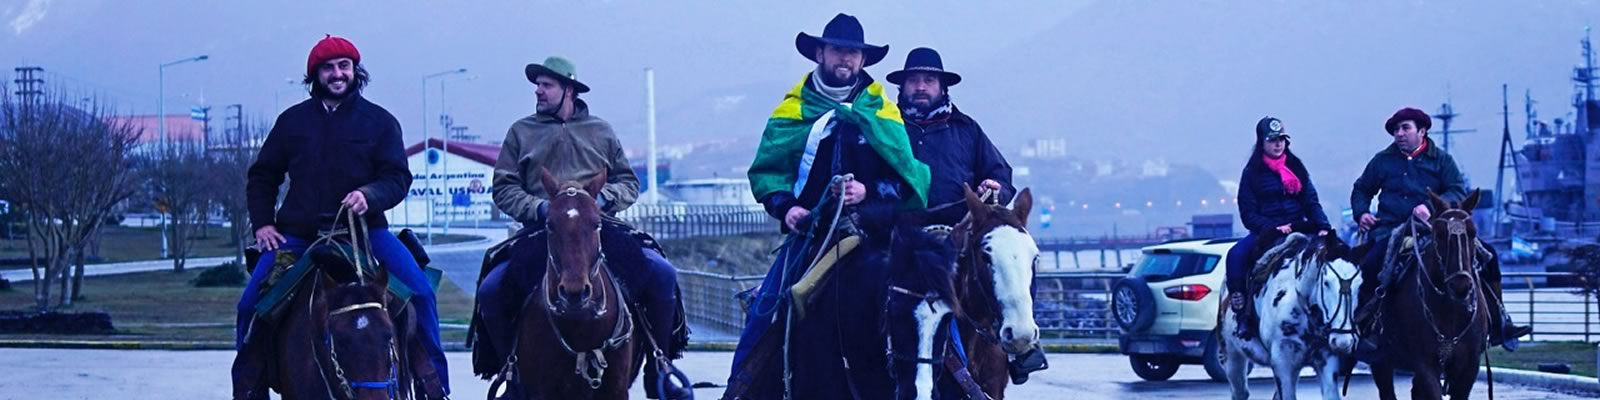 At journey's end in Ushuaia, a smaller crowd of devotees welcomed Filipe and Pablo Picasso, including a group of local gauchos and his sister Izabella. Photo by Barbara Nettleton.